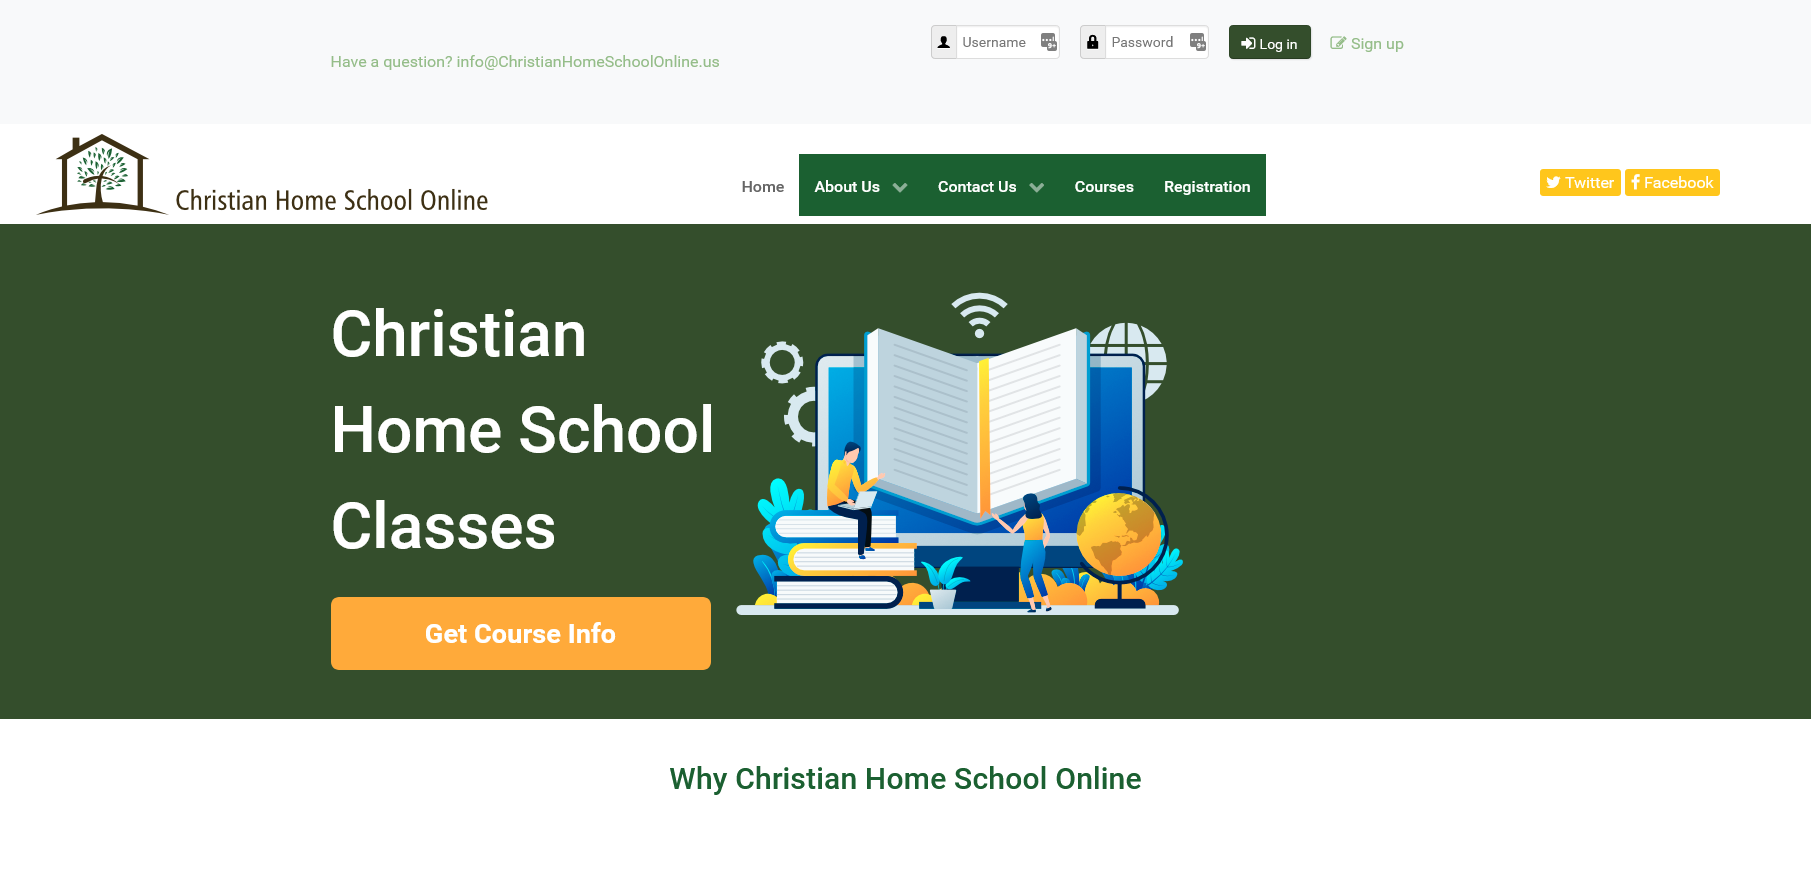 Christian Home School Online